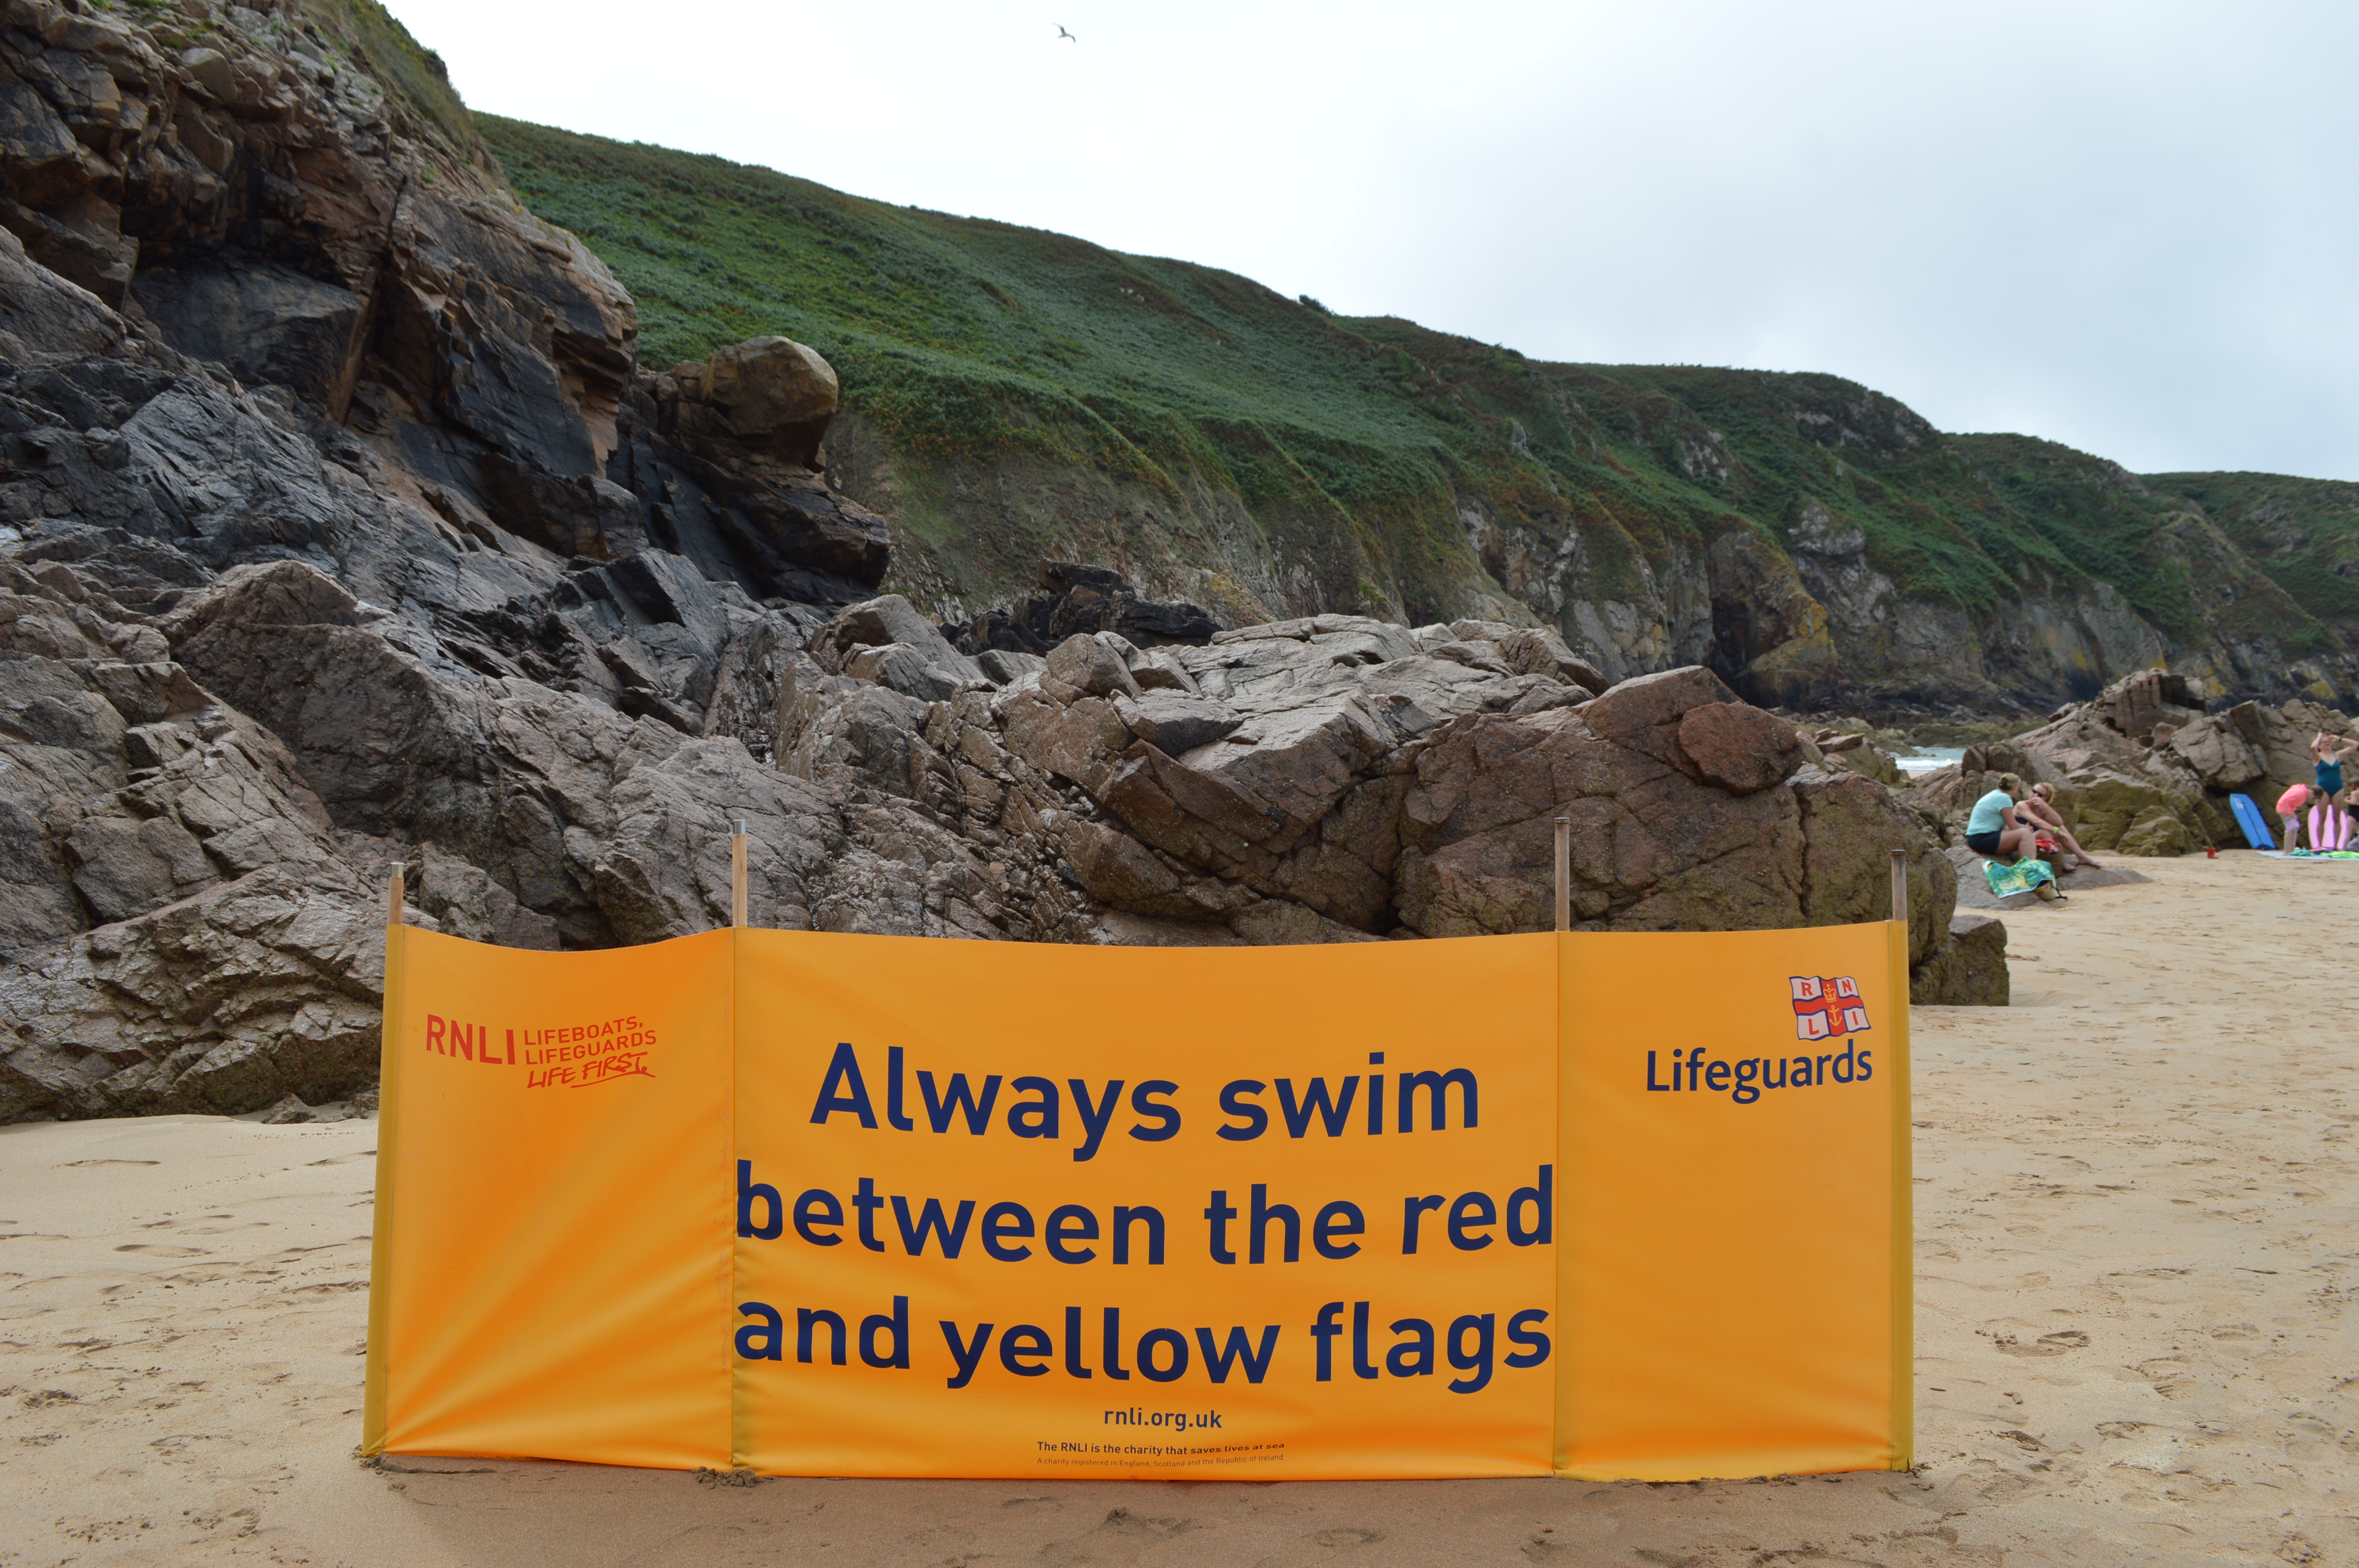 'Always swim between the red and yellow flags'